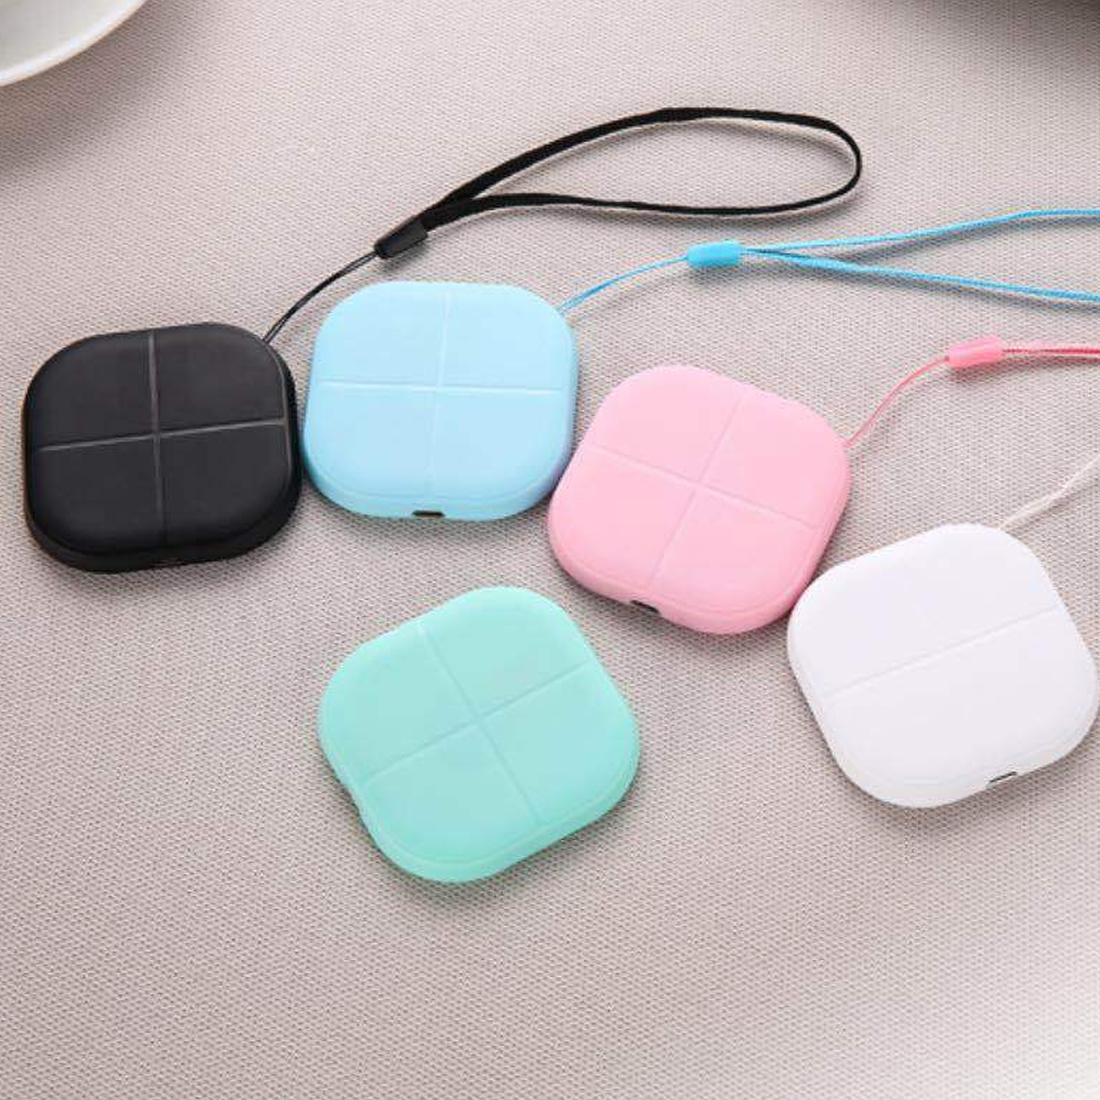 Cute QI Wireless Charger Charging Pad for Samsung Galaxy S7 S6 edge iPhone8 X Nokia Google Nexus4 5 6 Micro USB QI Phone Charger gadget